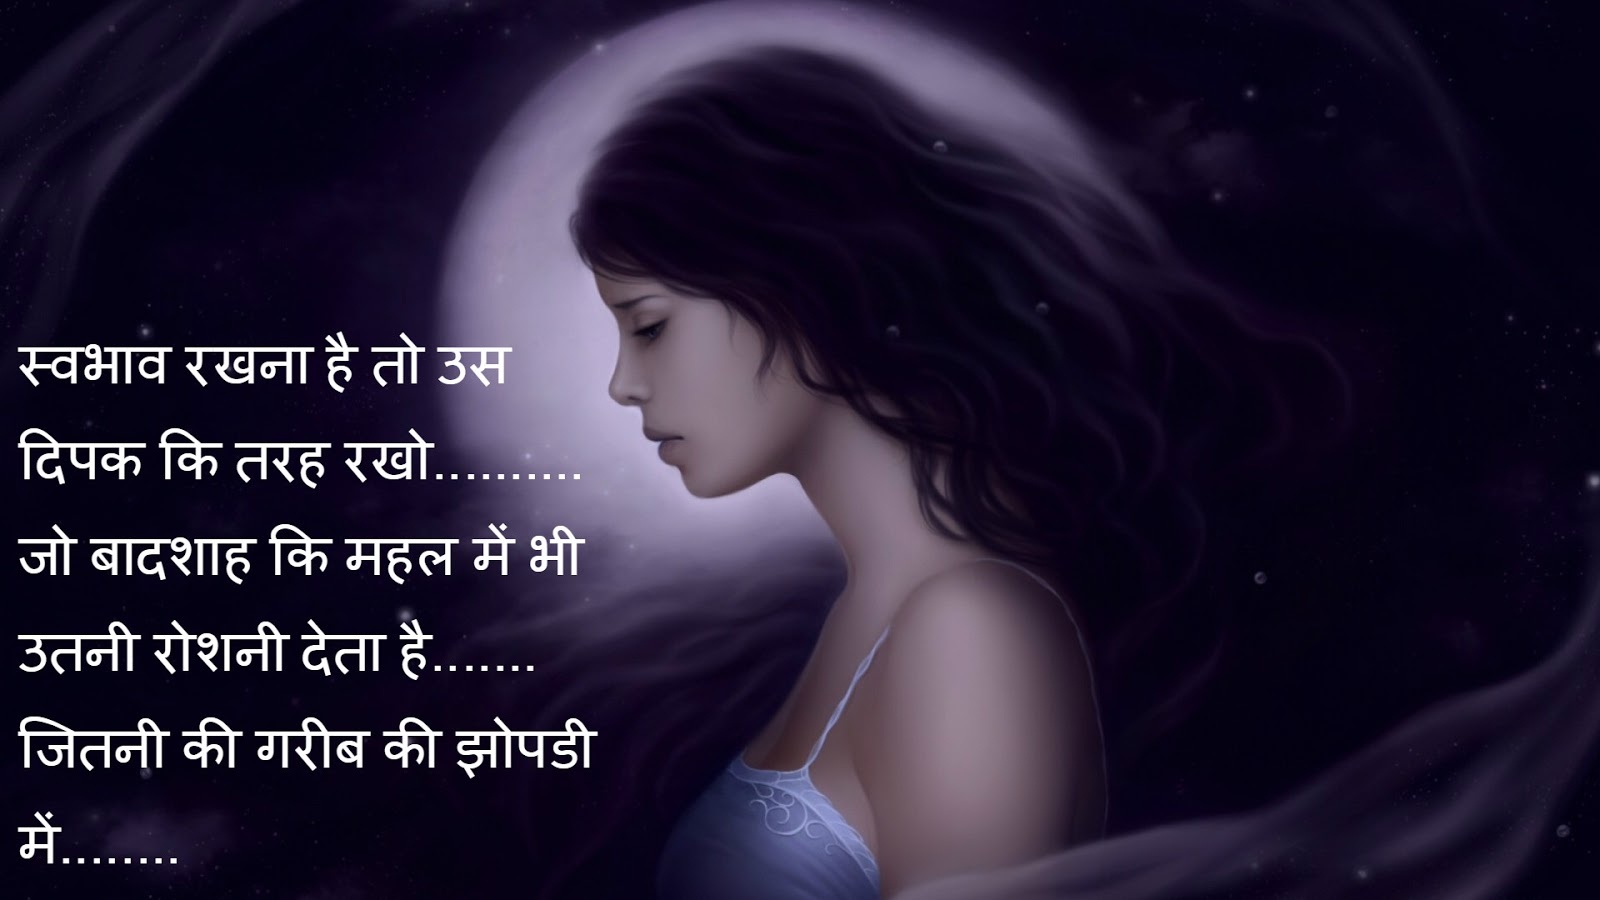 india shayari images 2017},hindi shayari,shayari in hindi,shayari ...